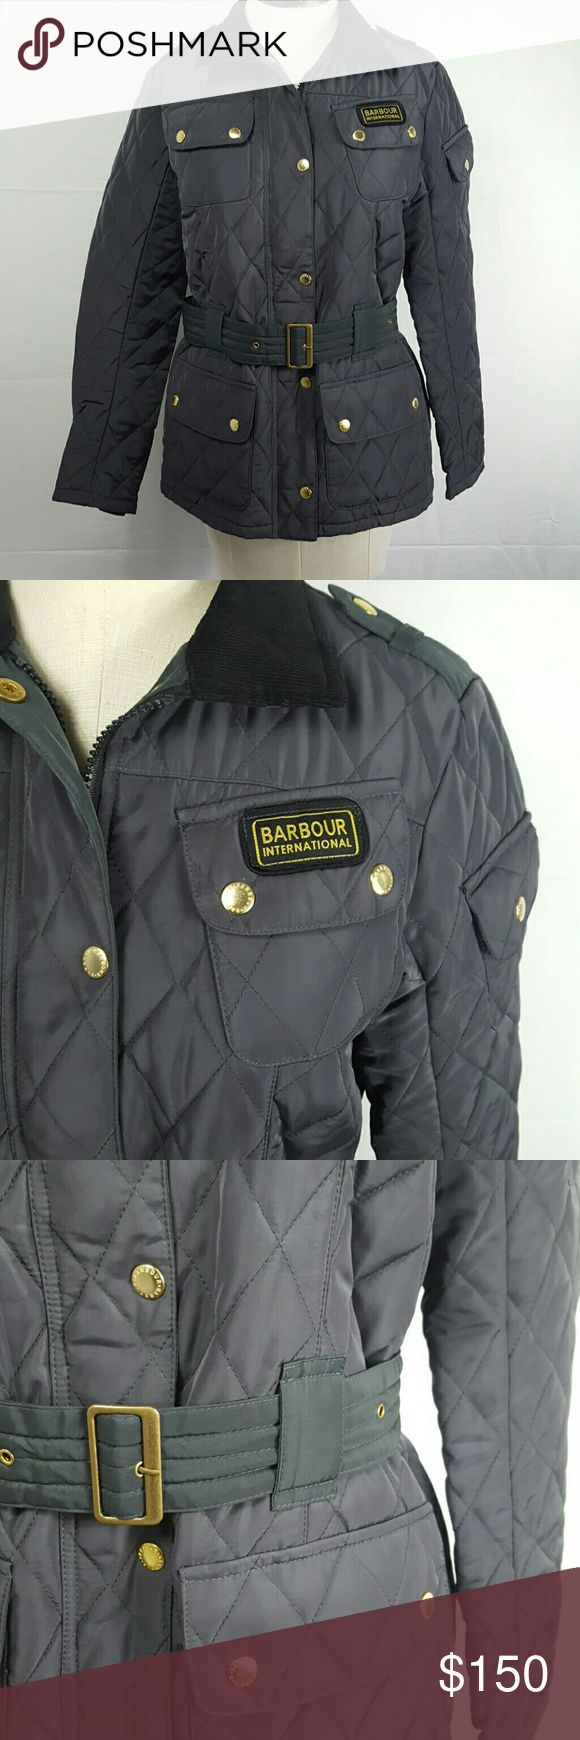 """BARBOUR INTERNATIONAL quilted waterproof jacket Top of the line quality and classic, military-inspired styling to boot!  Quilted waterproof polyester jacket with a belted waist and the option to turn up and belt the corduroy collar.  The color is a beautiful slate grey, but it does take on an almost olive tone in certain lighting.  Zippered front, with a button snap placket, 5 button snap pockets, gold hardware and zippered wrist panels.  InEUC.  UK size 10, US size 6.  21"""" armpit to armpit…"""